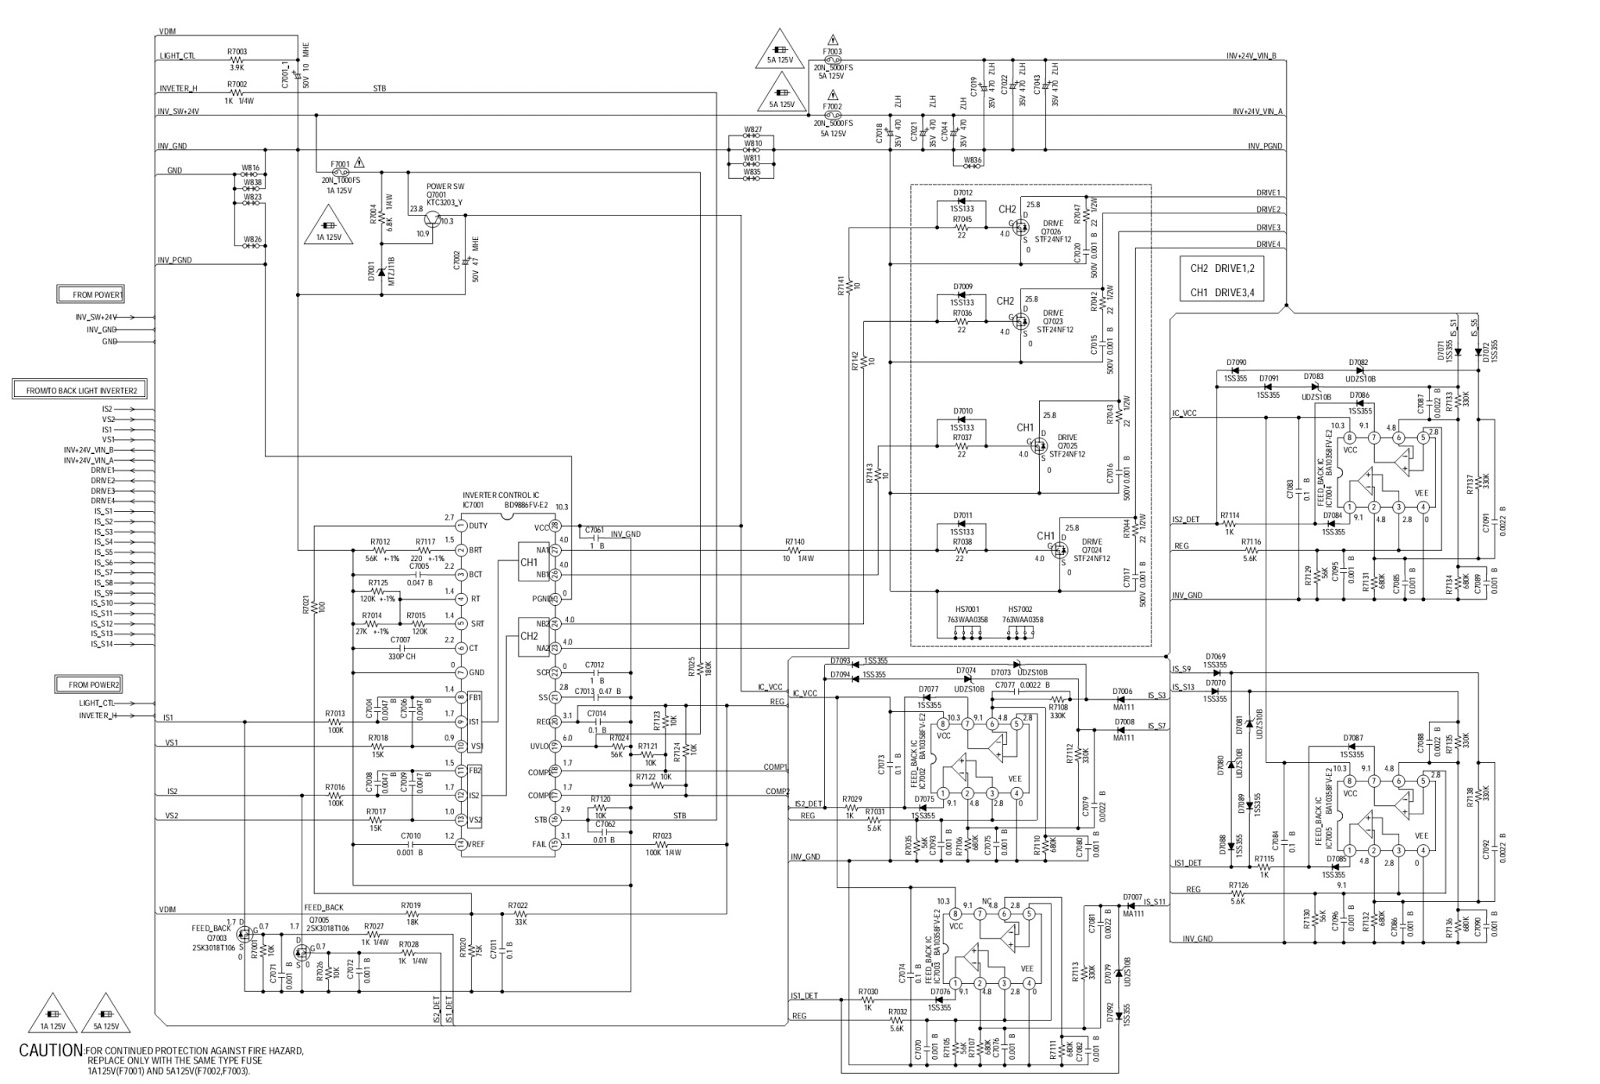 rv electrical wiring diagram for tv wiring diagram source rv dual battery wiring diagram rv electrical wiring diagram for tv [ 1600 x 1084 Pixel ]